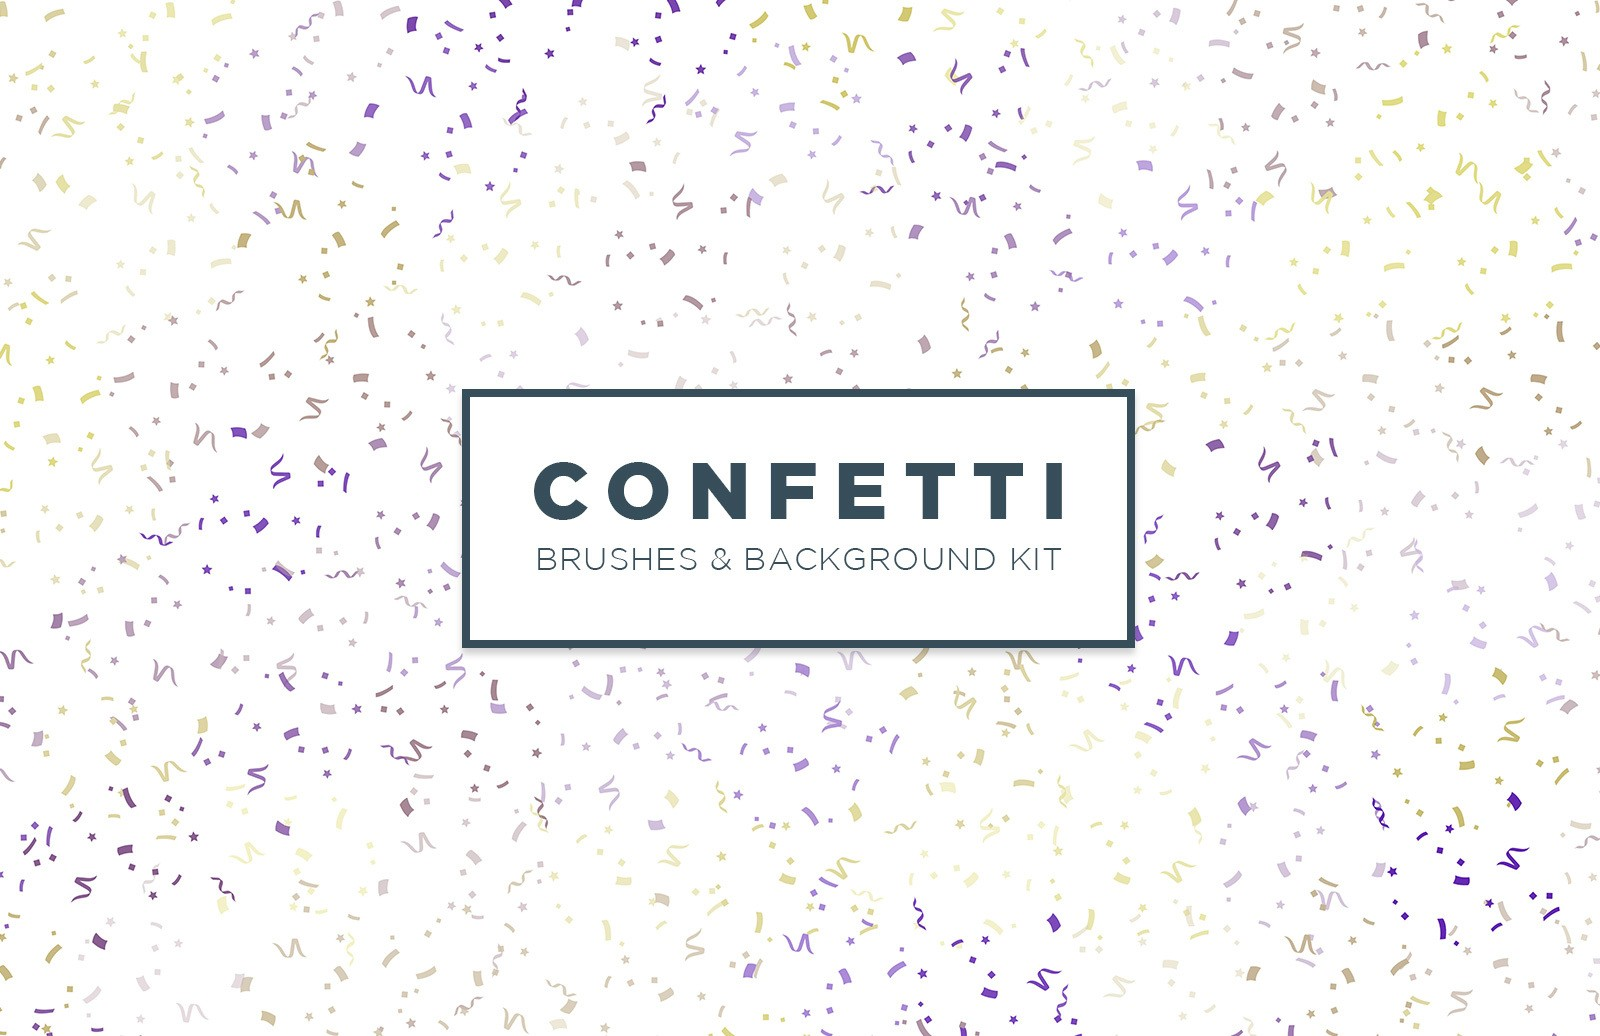 confetti free brushes and background kit medialoot